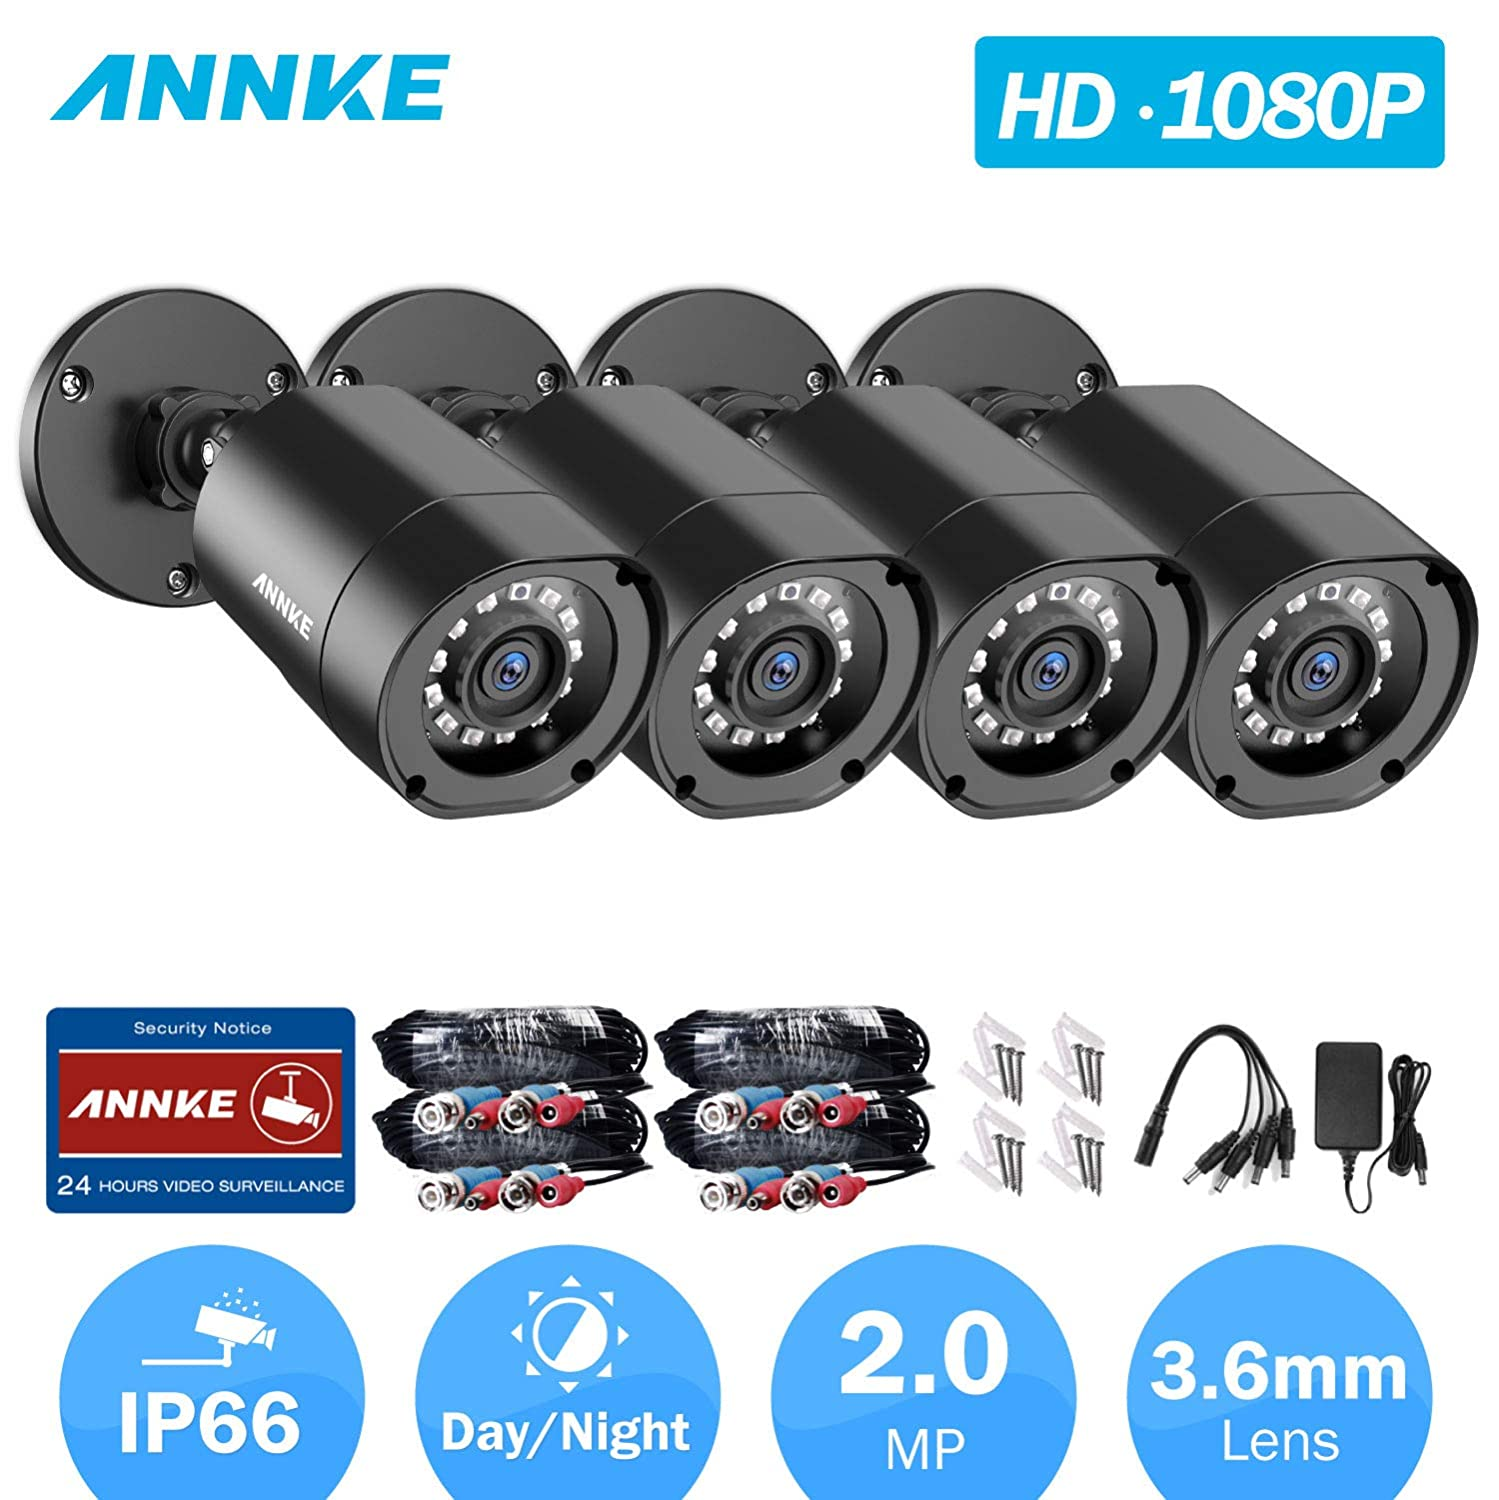 ANNKE 4-Packed 1080P HD-TVI Security Camera 2.0MP Hi-Resolution Indoor Outdoor Bullet Camera with 66ft Super Night Vision, IP66 Weatherproof Housing, Smart IR-Cut